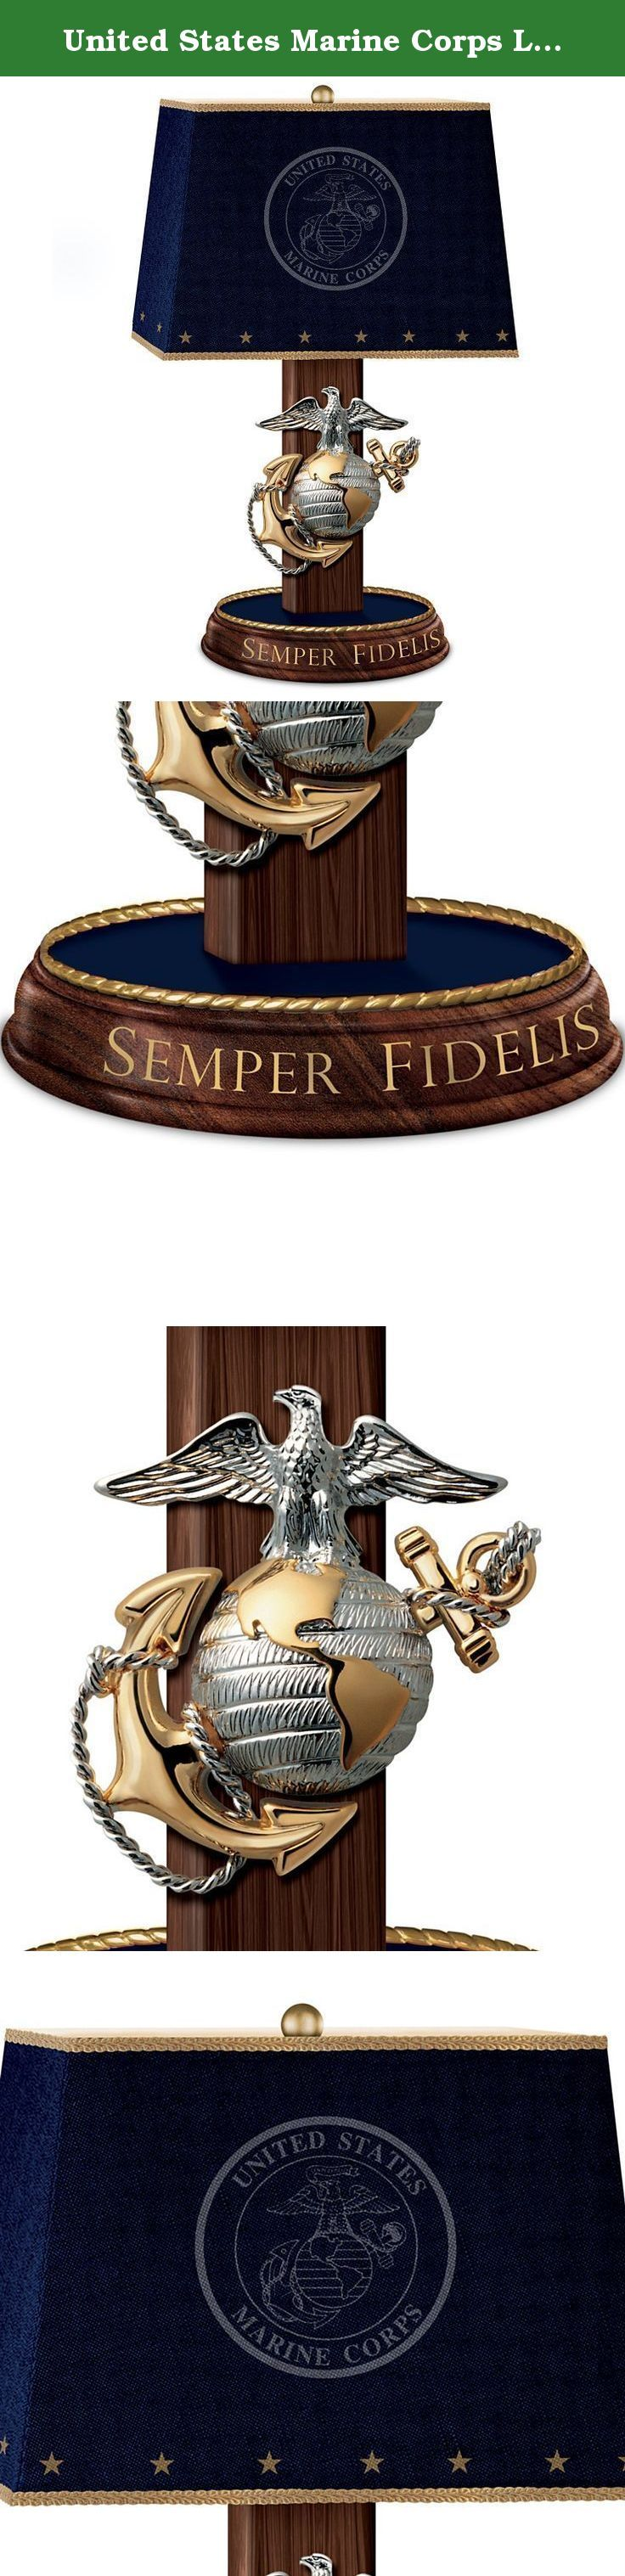 United States Marine Corps Lamp with Eagle, Globe, and Anchor Emblem and Motto by The Bradford Exchange. Let your Marine pride shine bright with the striking Always Faithful Lamp, exclusively from The Bradford Exchange. This Marine lamp stands nearly 1-1/2 feet high, creating an impressive shining tribute to the brave men and women who protect us every day and around the world. It even comes with a FREE CFL bulb that lends a soft illumination to your home decor. Expertly hand-sculpted and...